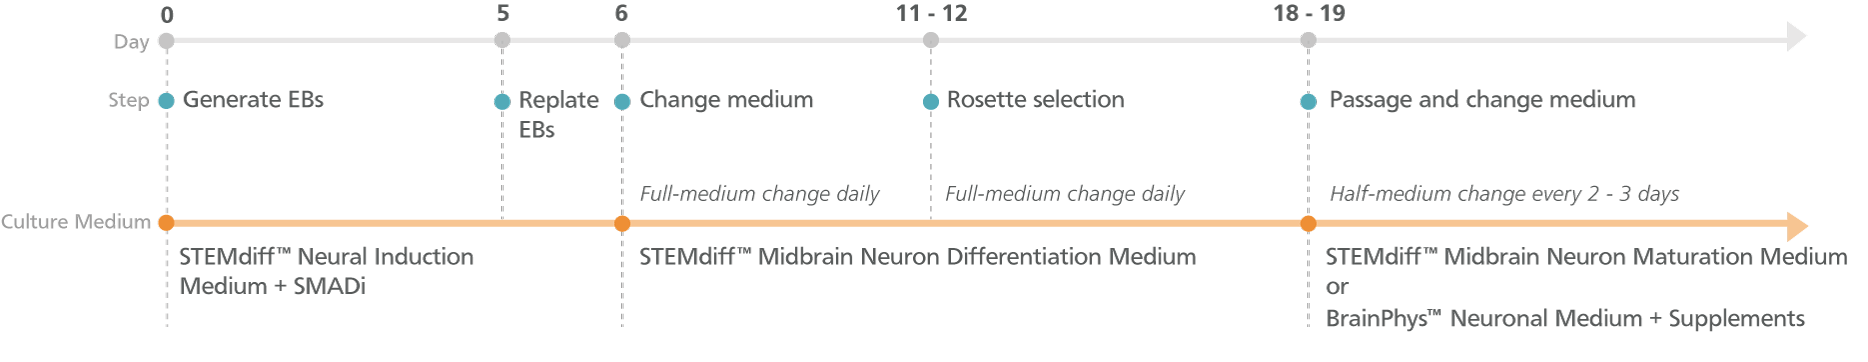 Experimental Protocol for STEMdiff™ Midbrain Neuron Differentiation and Maturation Kits (Embryoid Body Protocol)